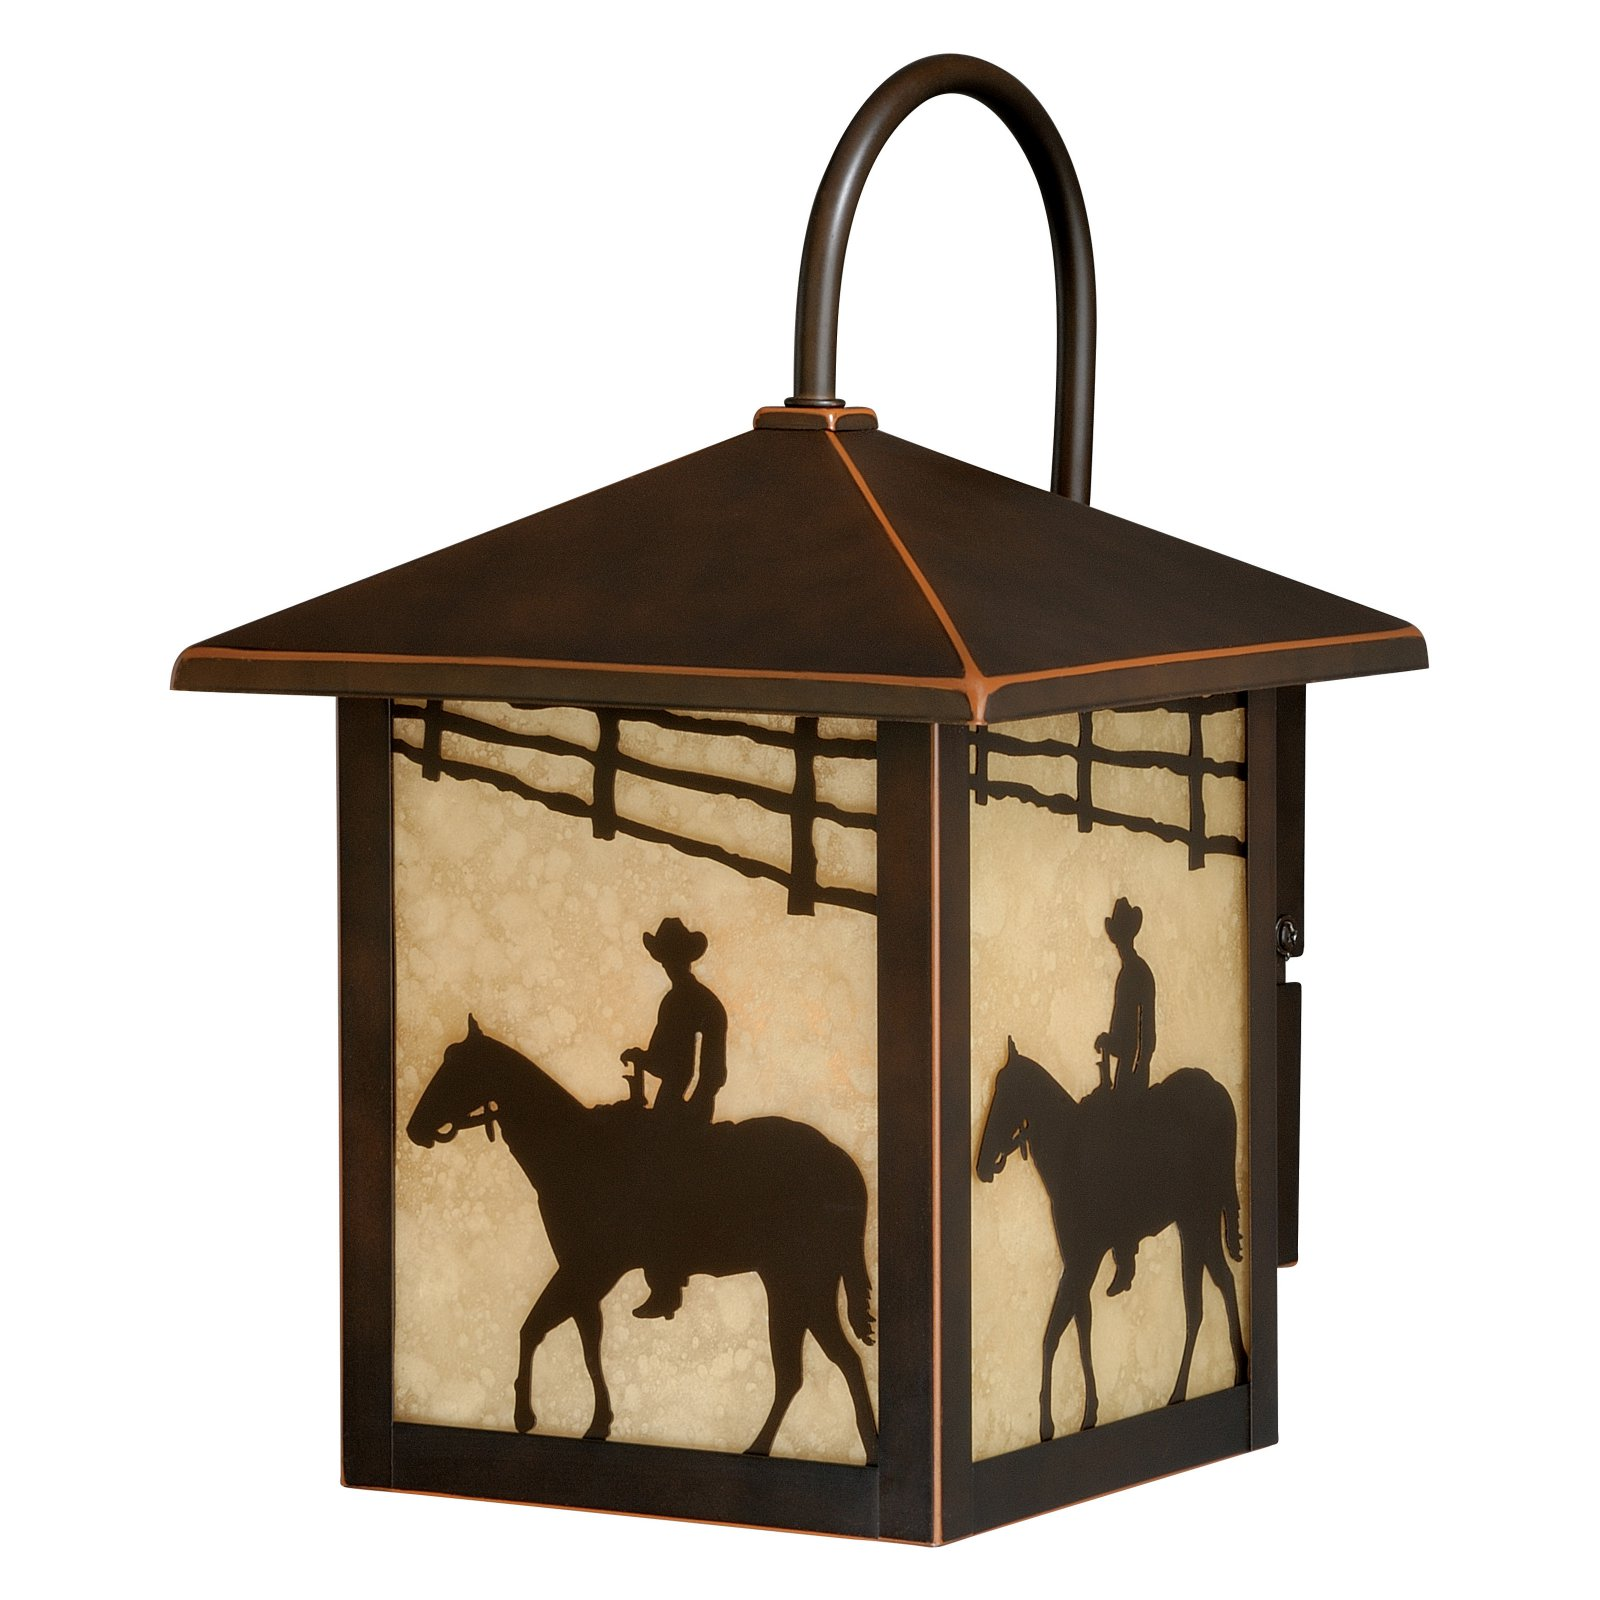 Vaxcel Trail T0105 Outdoor Wall Sconce